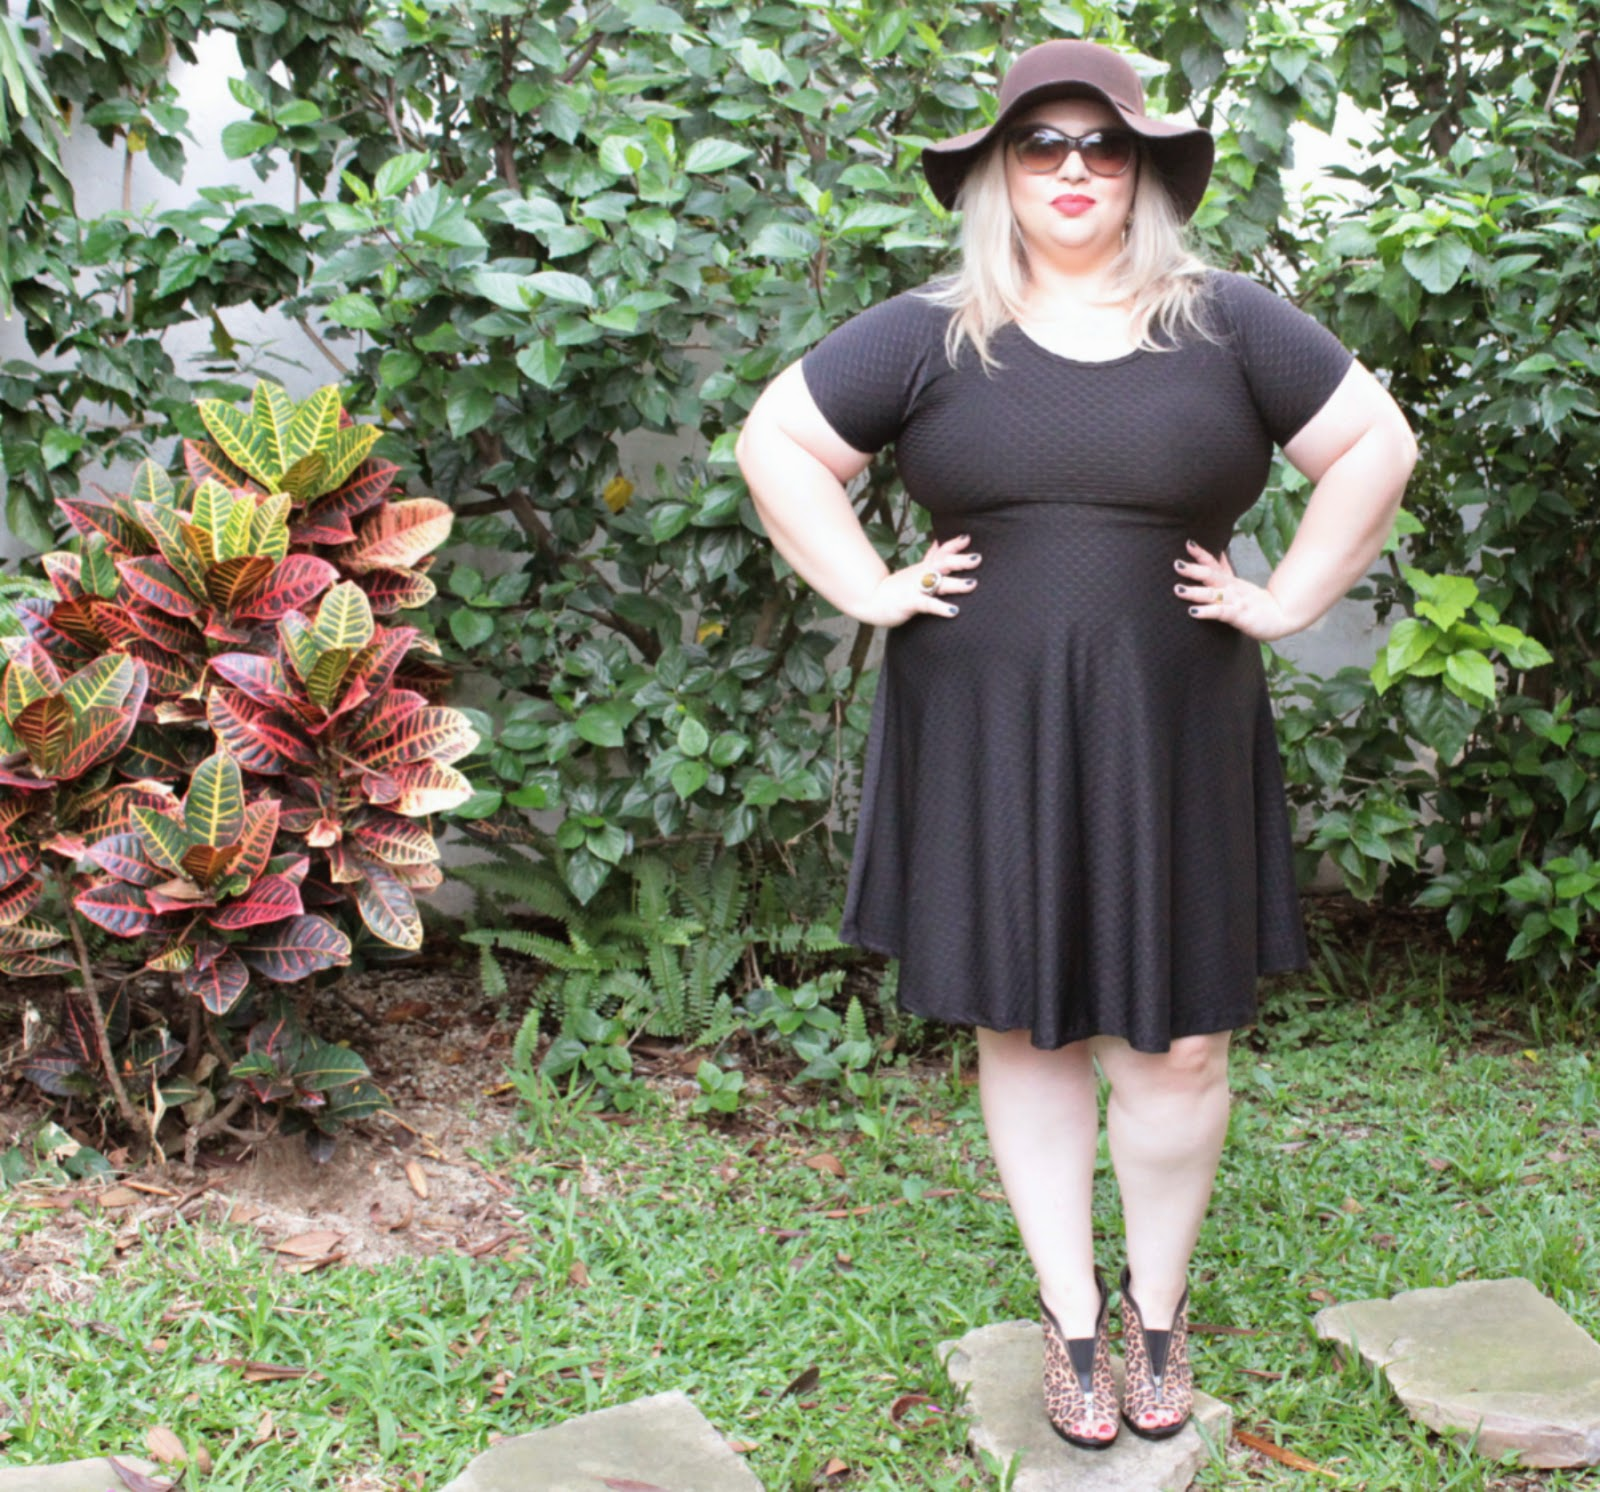 look, plus size, gordinha, marisa, vestido, ankle boots, animal print, moda, curva style, piccadilly's day, calçados piccadilly, piccadilly, confortável, outono inverno, gorda